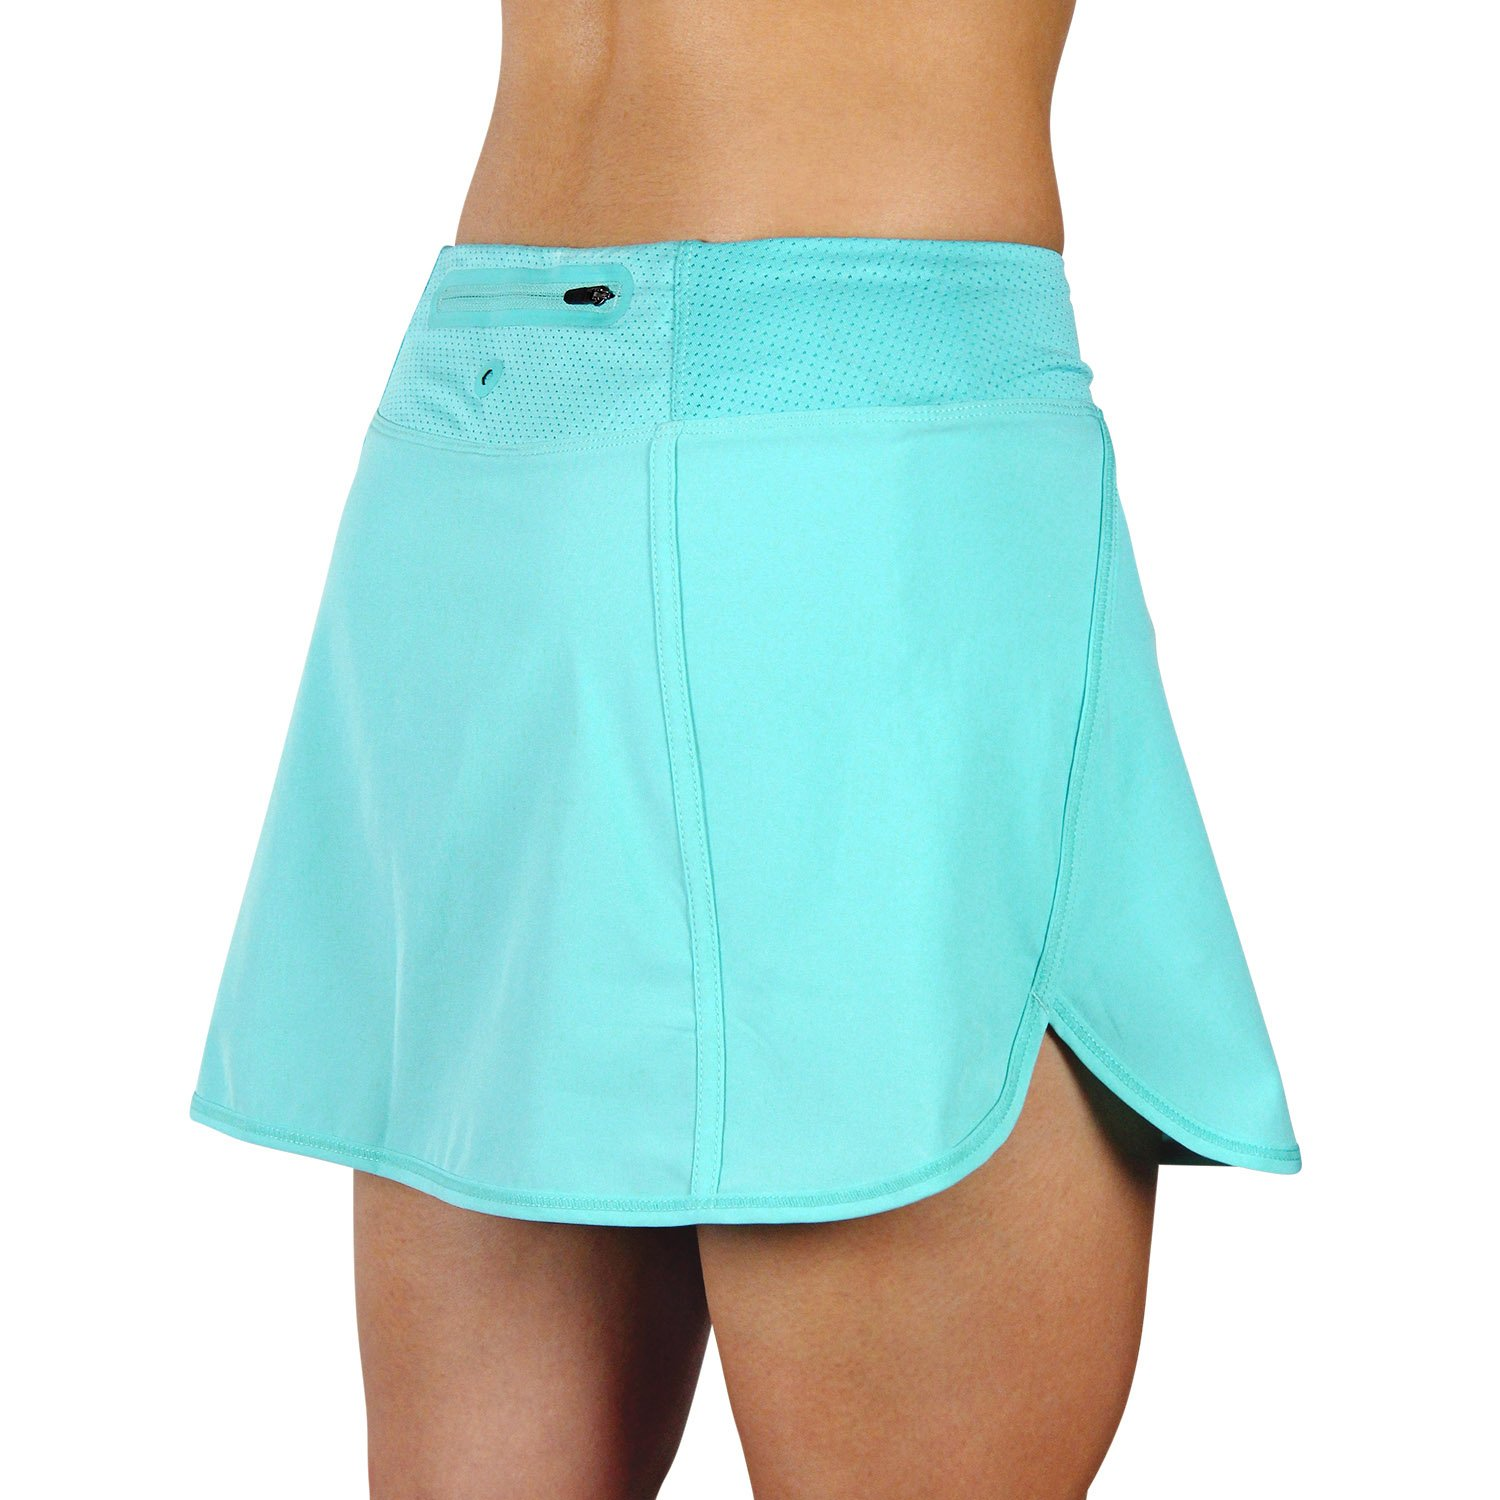 X31 Sports Running Skirt Tennis Skort with Shorts and Pockets (Turquoise, Medium)